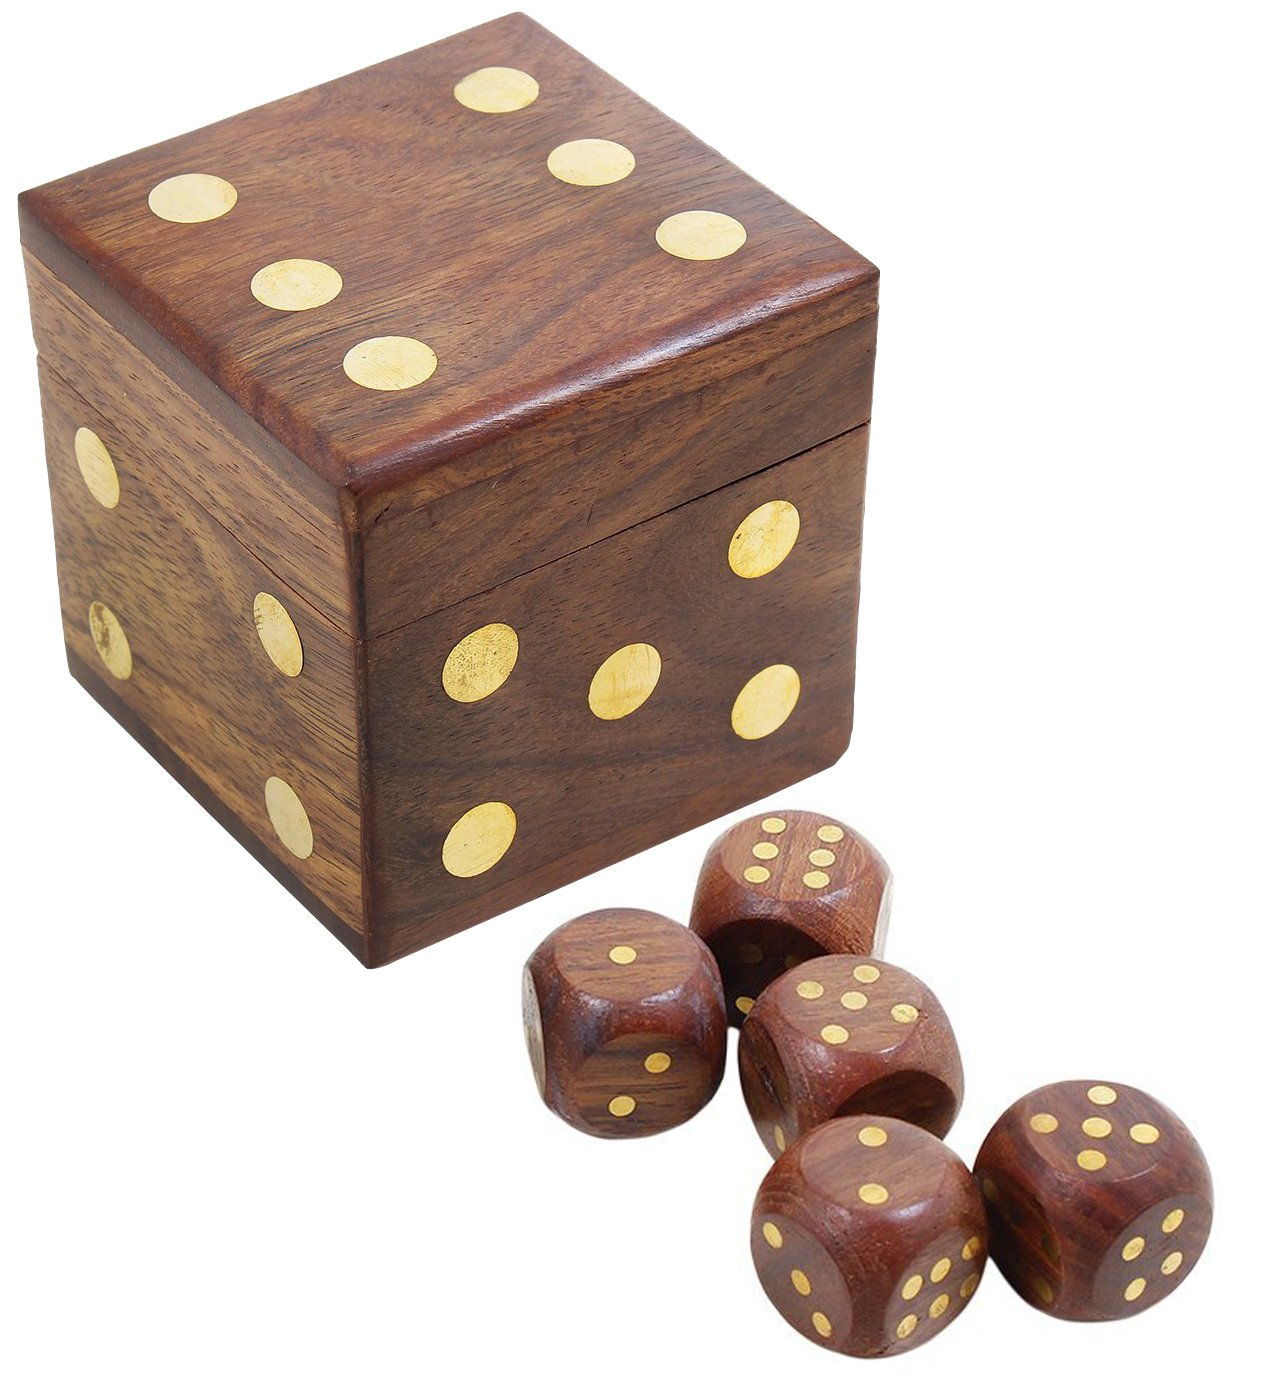 Handmade Indian Dice Game Set with Decorative Storage Box - Includes 5 Wooden Dice - Unique Gifts for Adults